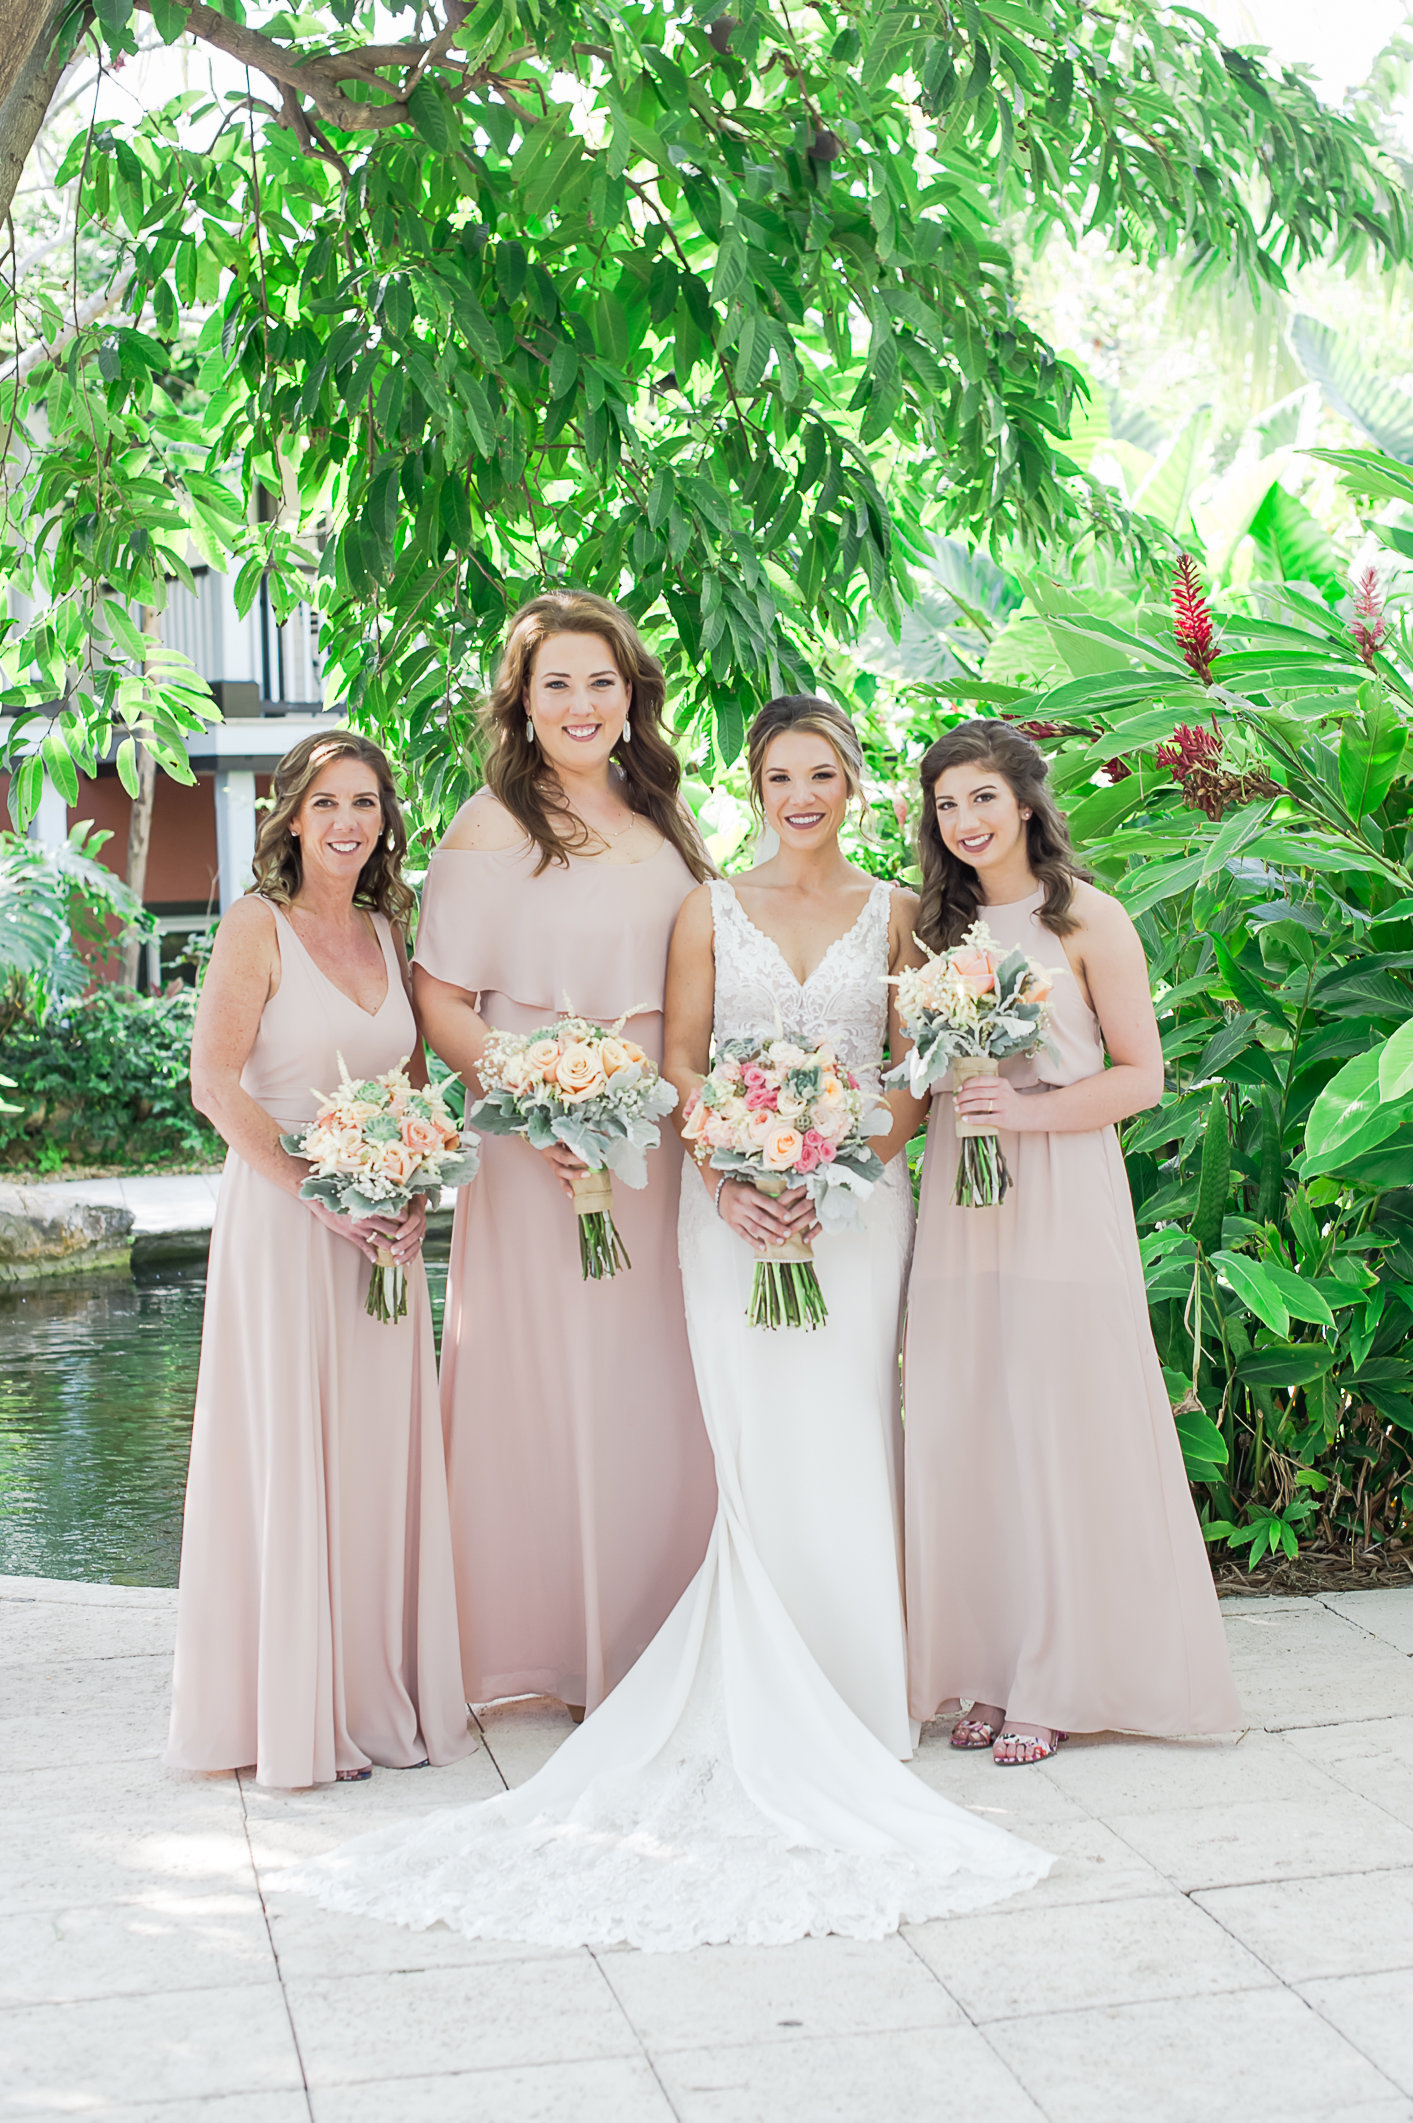 Bridesmaids - Sundy House by Palm Beach Photography, Inc.